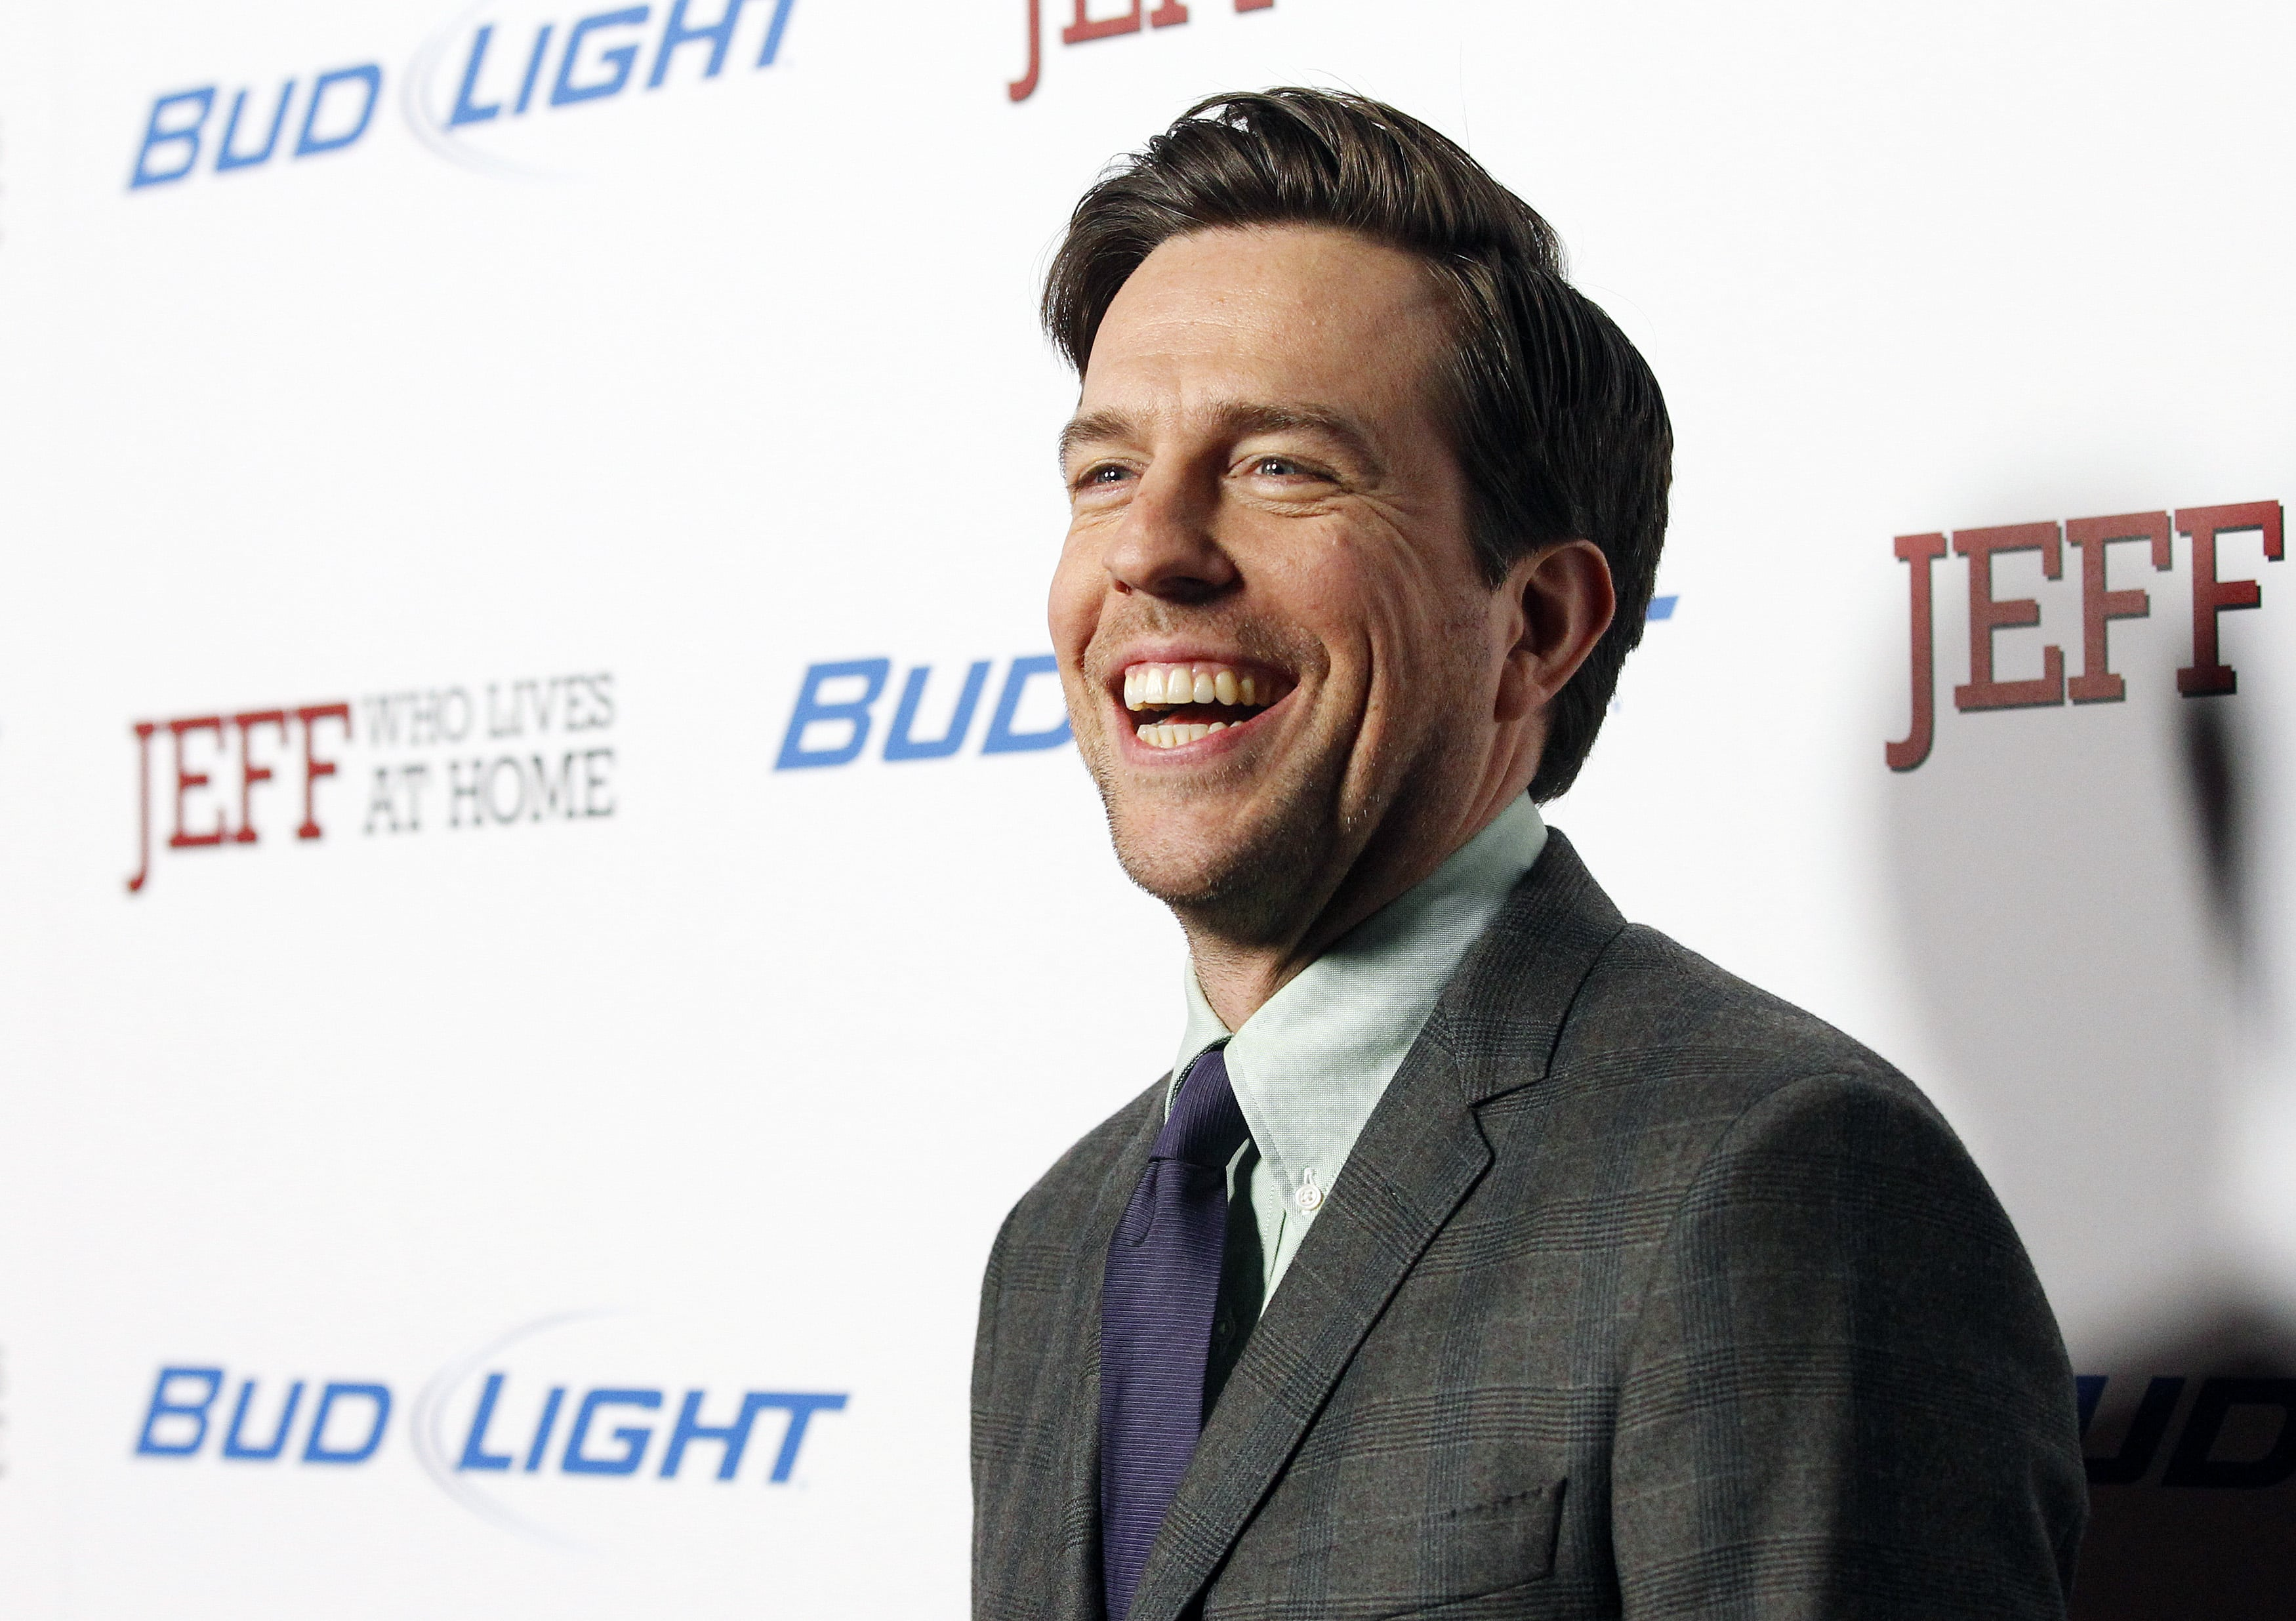 ed helms 4k widescreen desktop wallpaper 1517